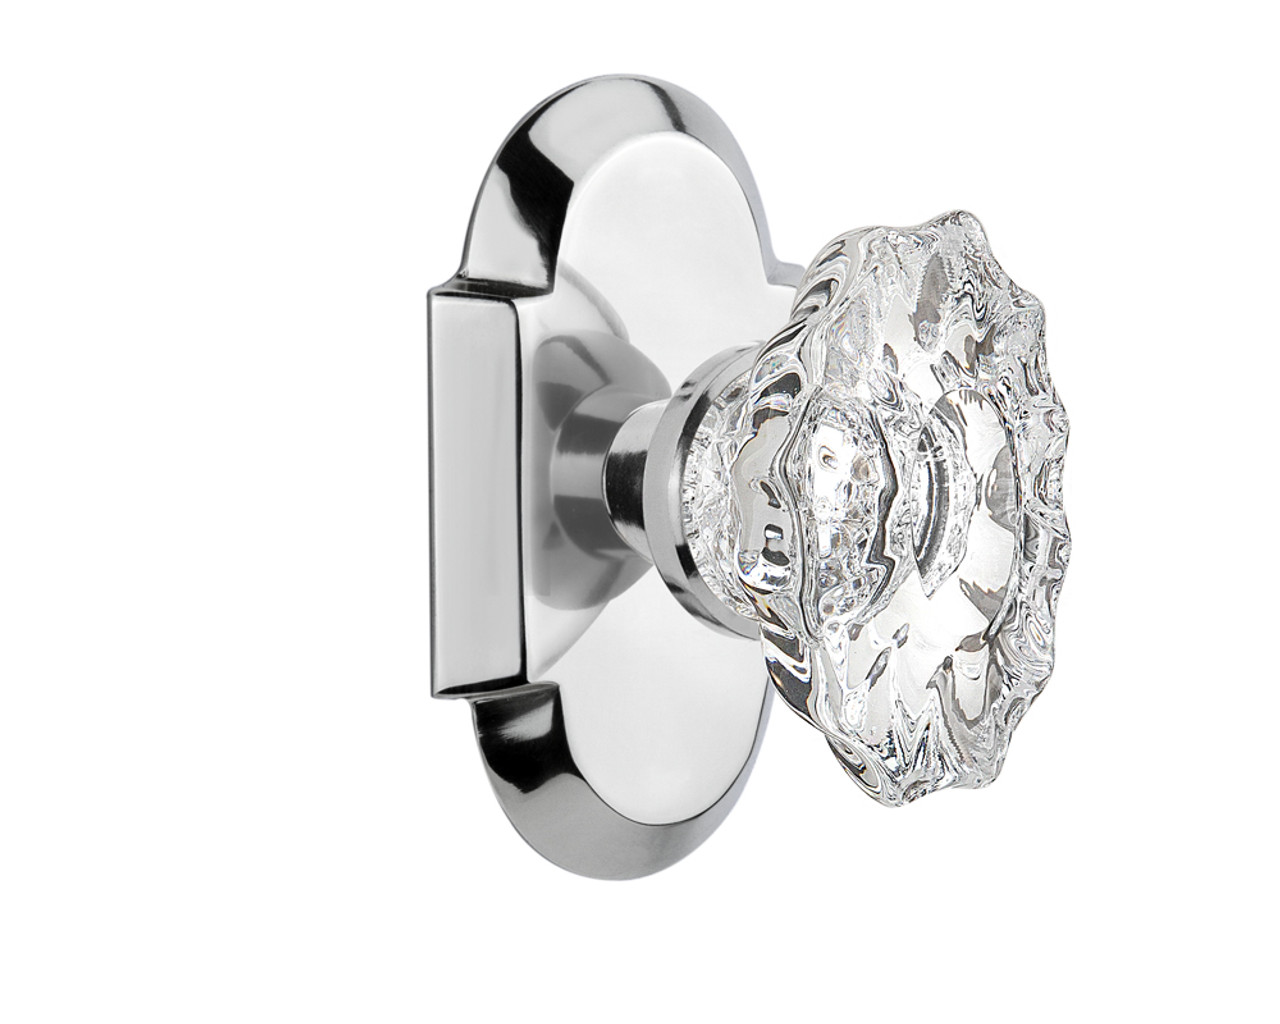 Nostalgic Warehouse Cottage Plate Double Dummy Chateau Door Knob in Bright Chrome (NW-713822)